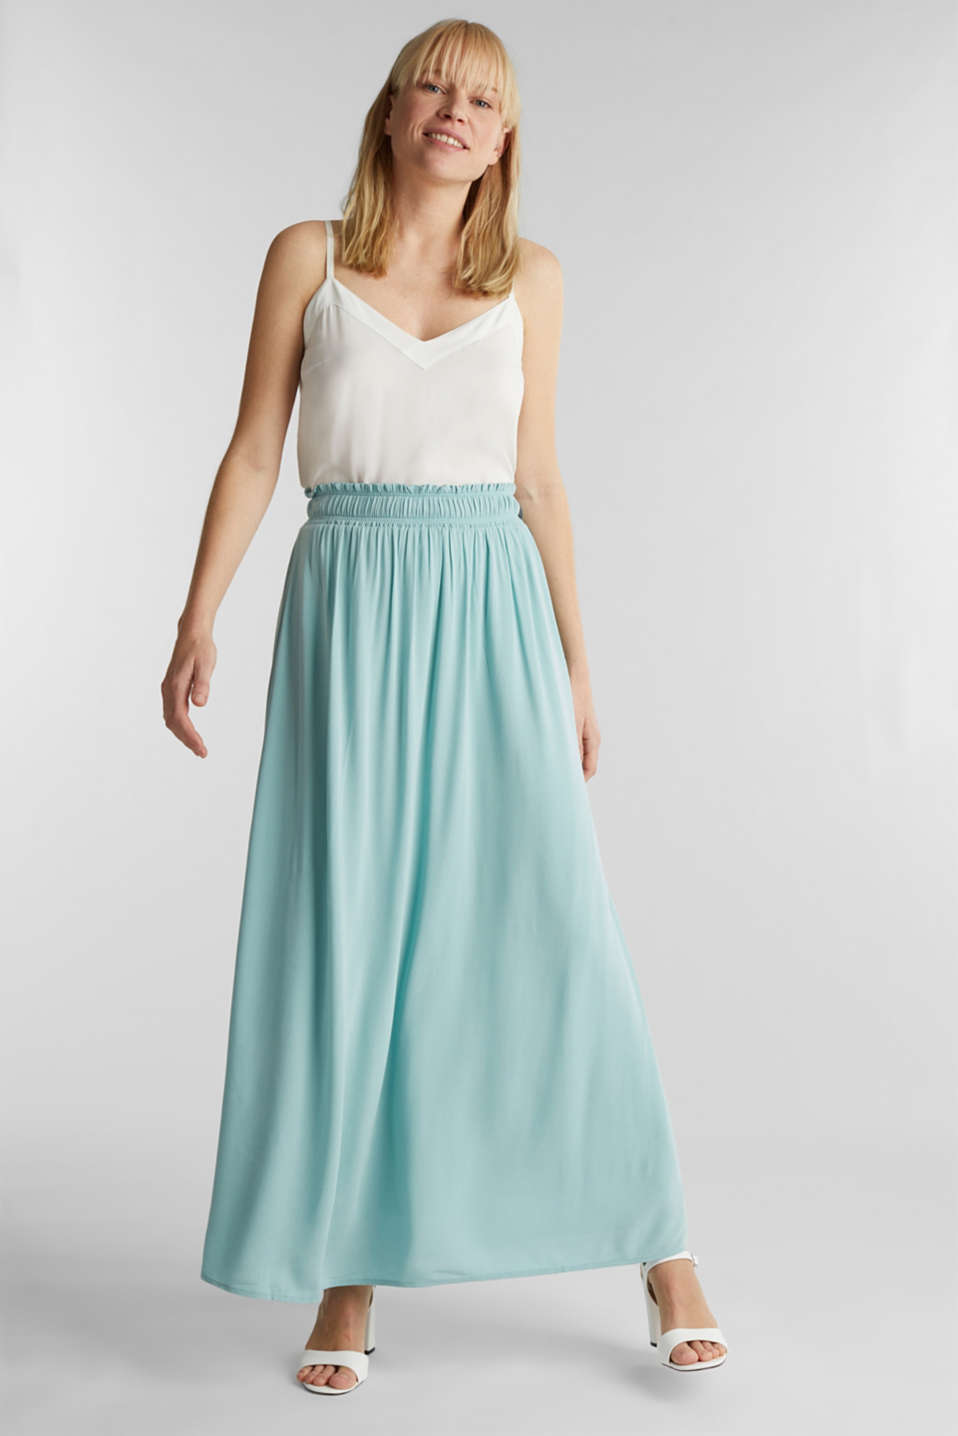 Maxi skirt in flowing crêpe, LIGHT AQUA GREEN, detail image number 0